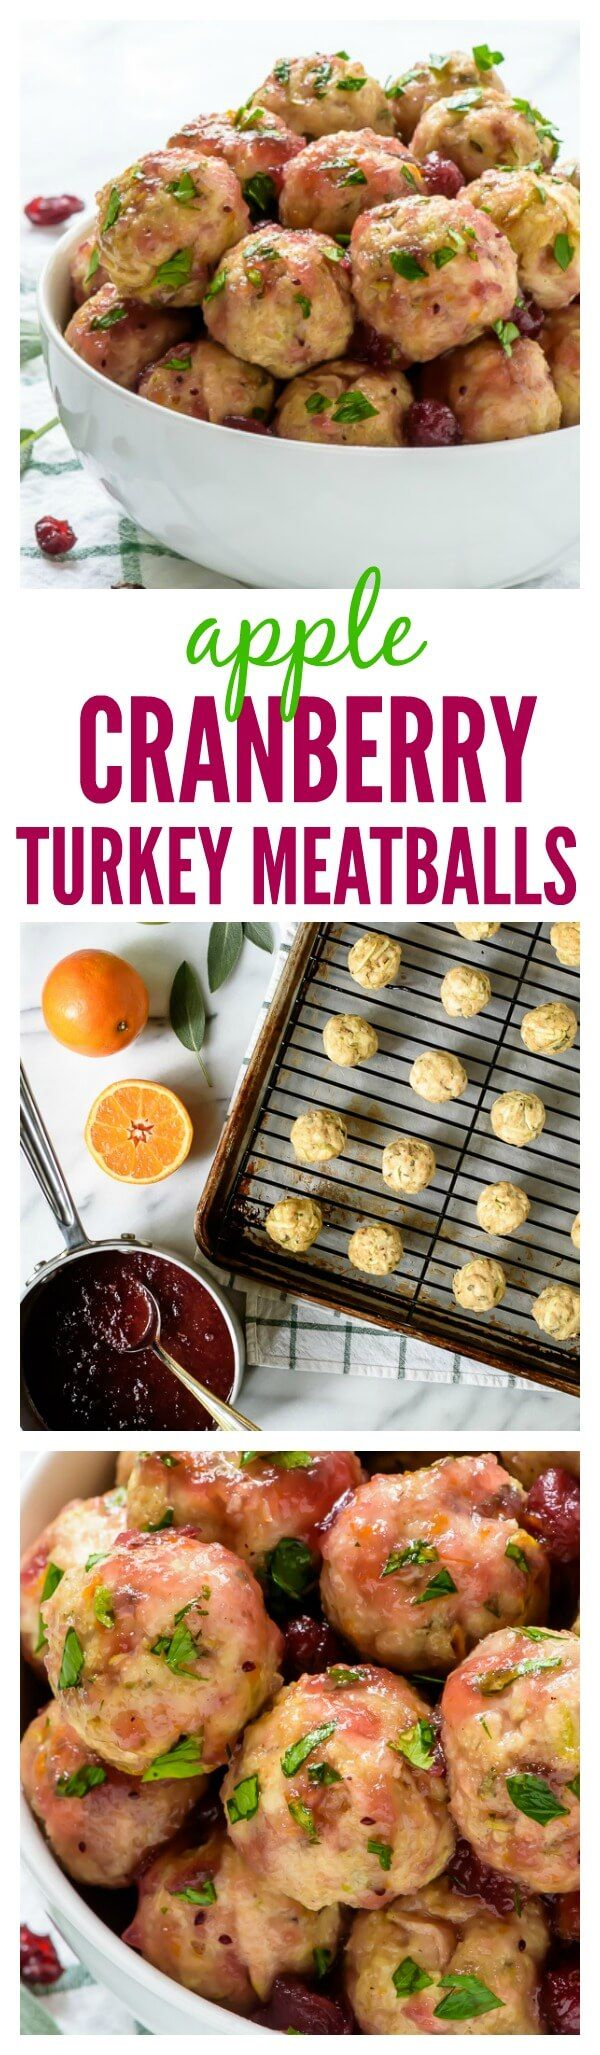 Apple Cranberry Turkey Meatballs. Easy, juicy and every bite tastes like Thanksgiving!